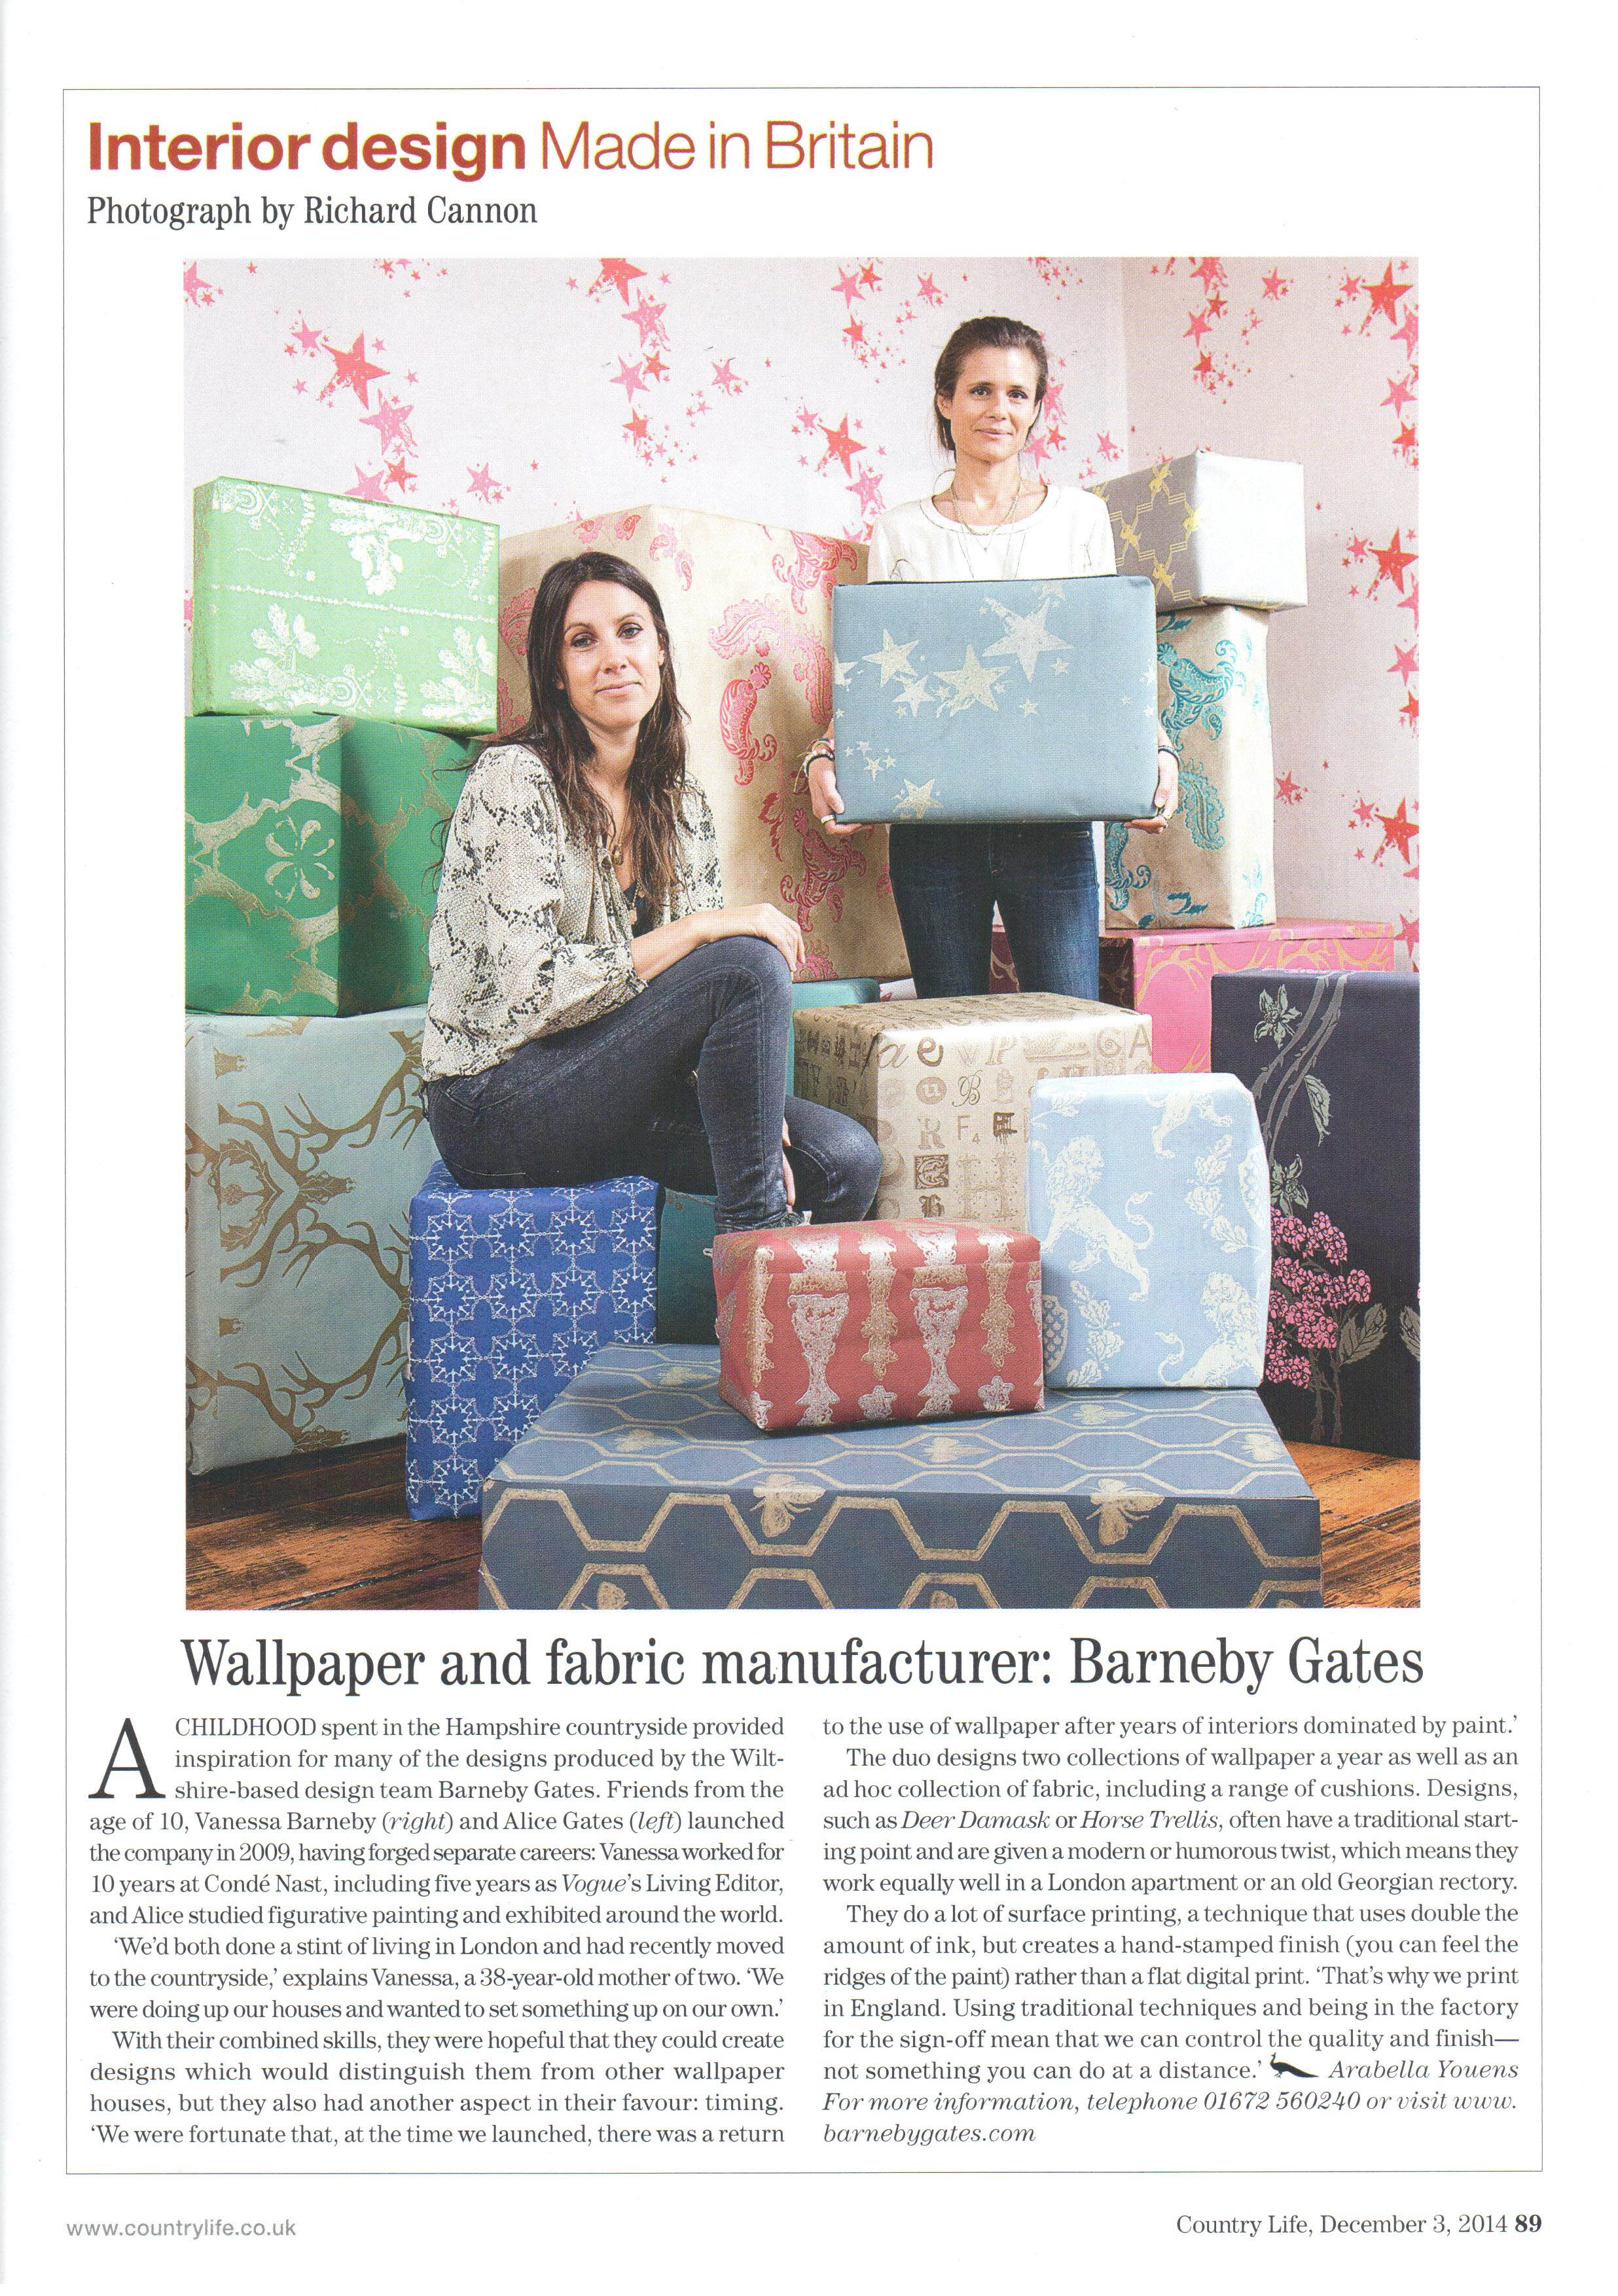 Country Life - Article - Dec 2014